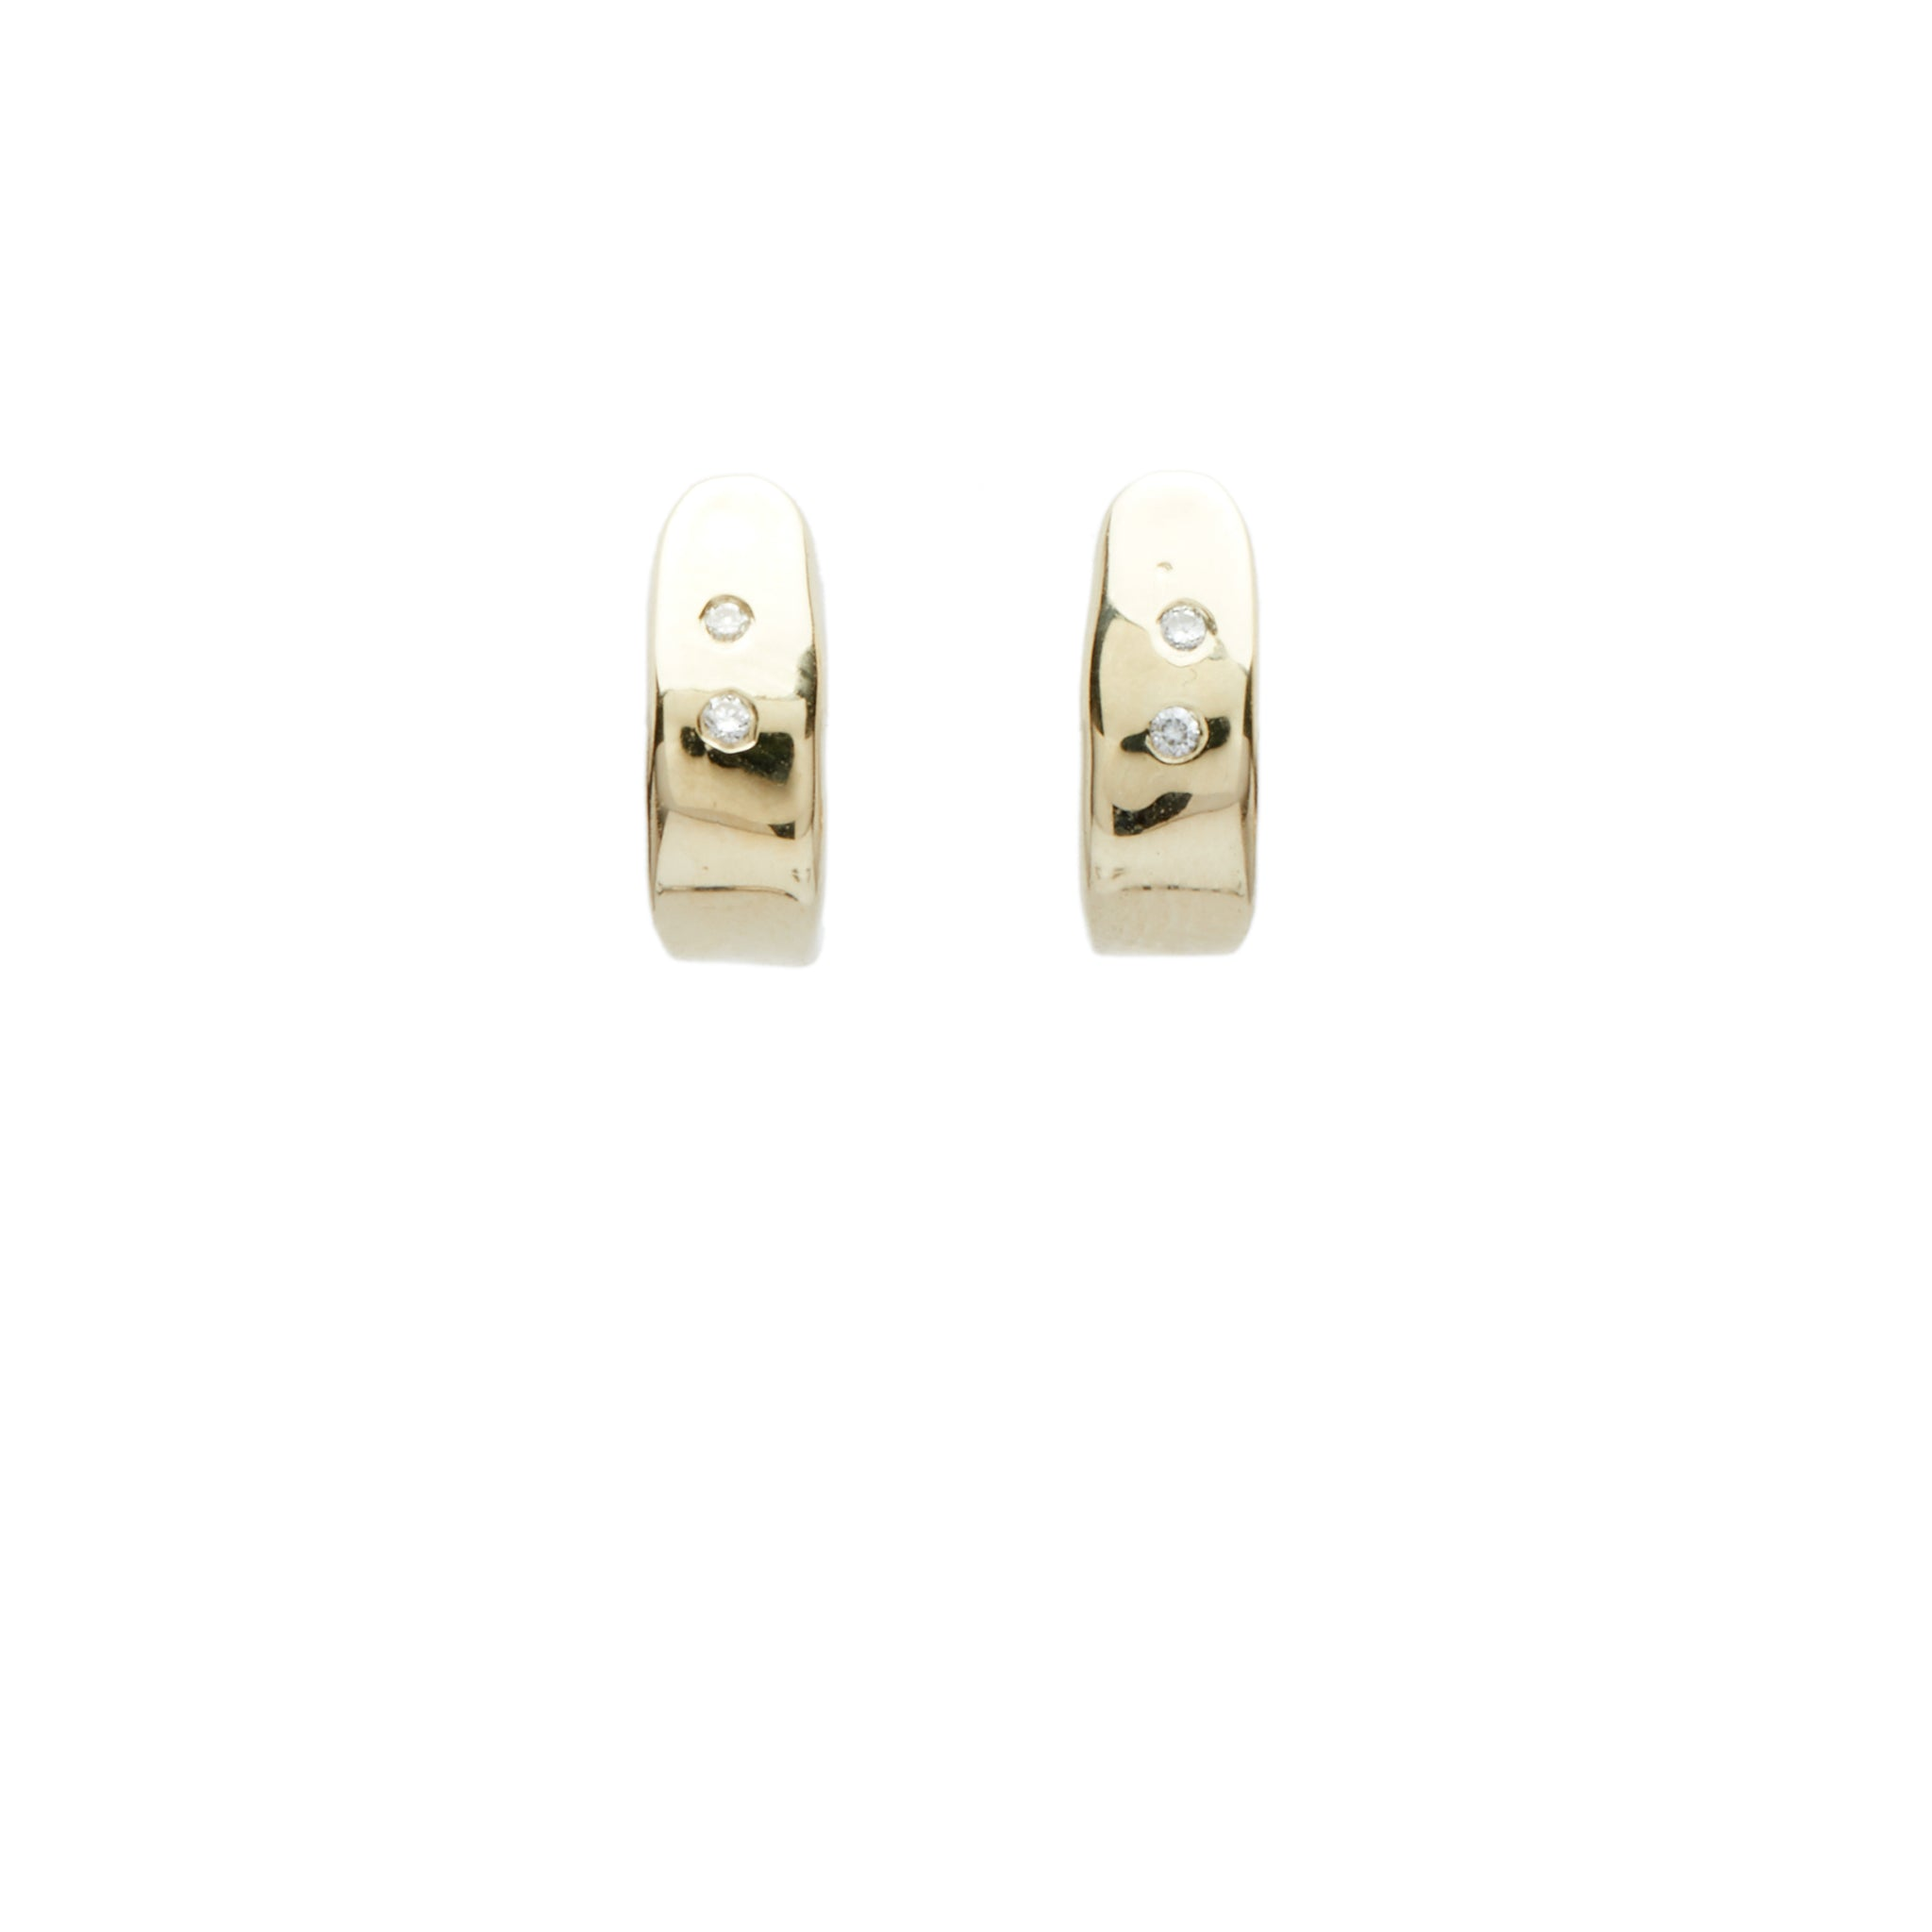 huggie earrings diamond gold huggies small hoop earrings